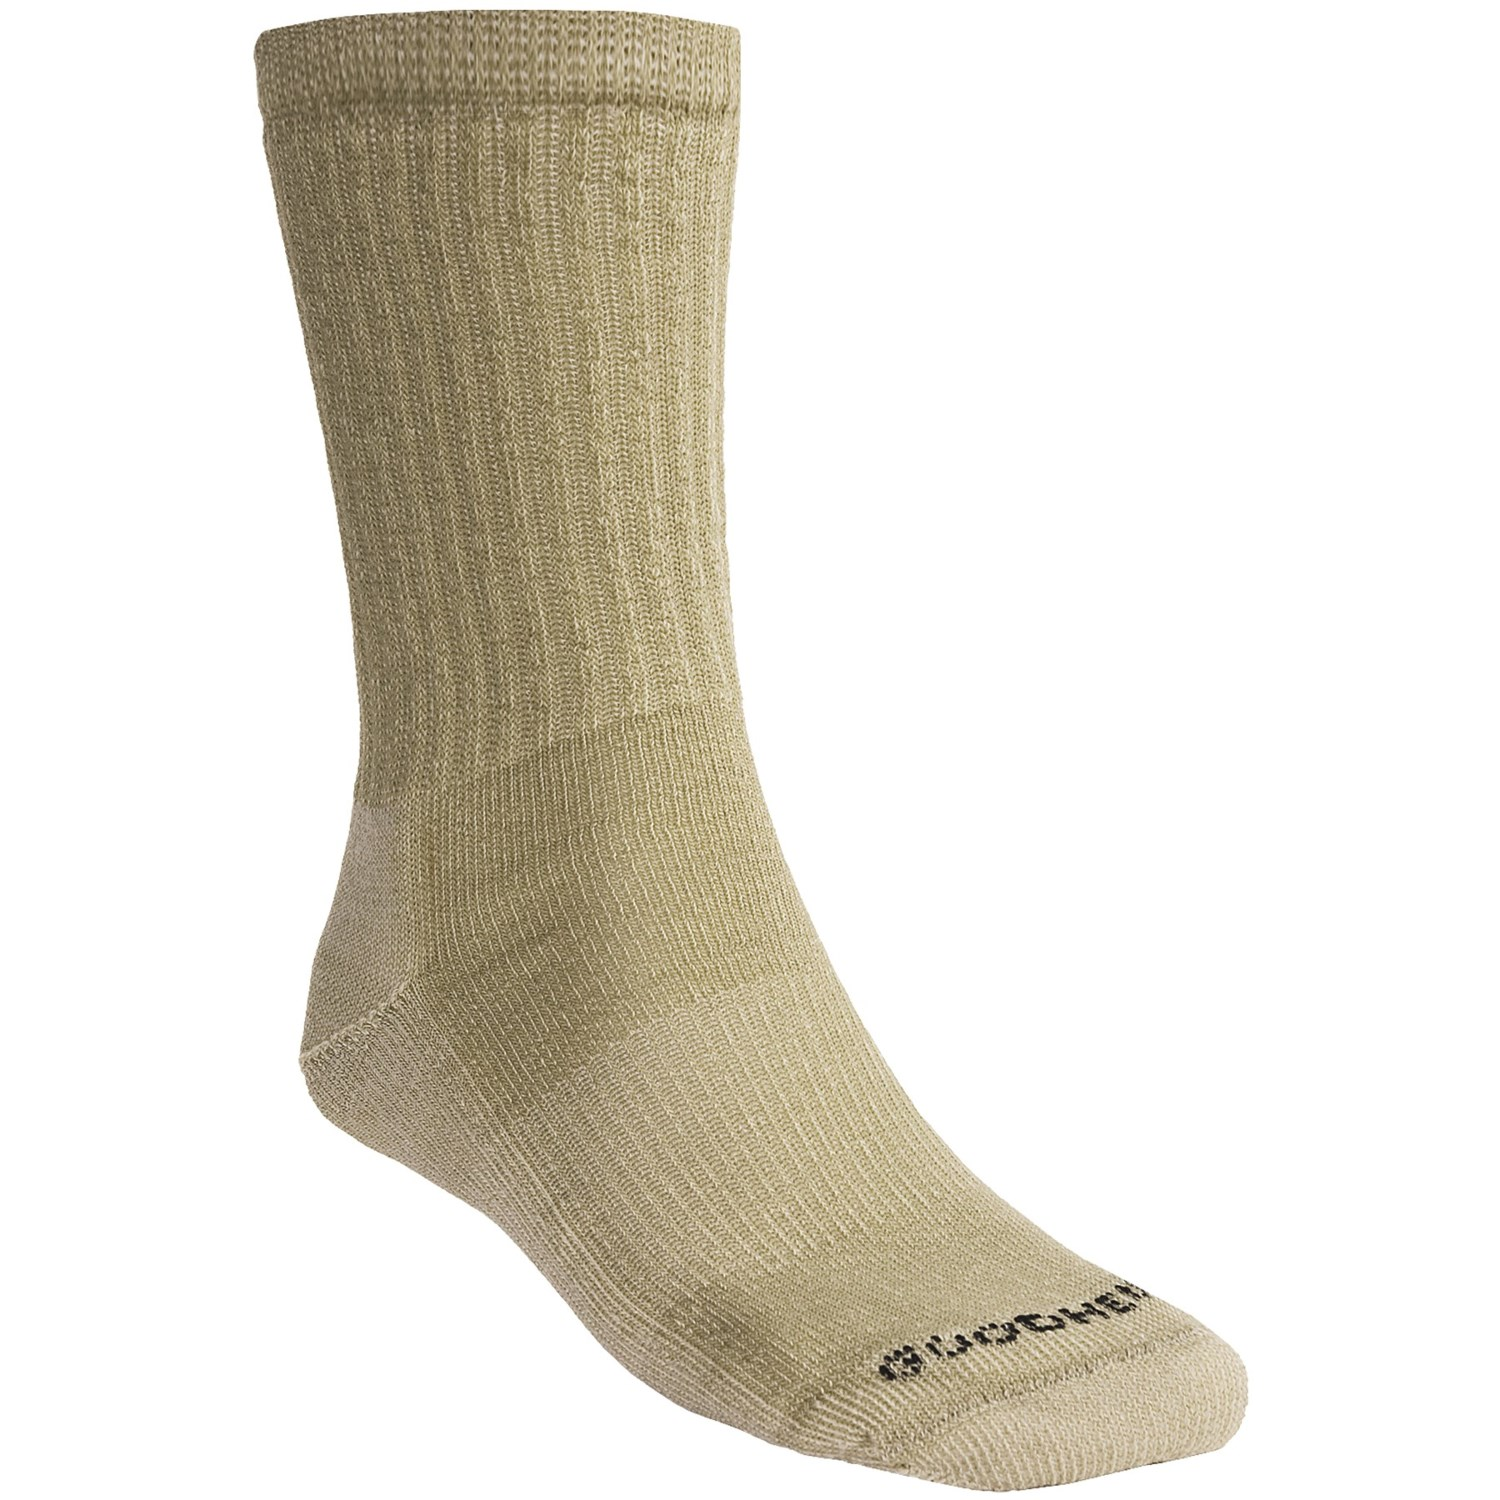 Keep your feet warm and dry wth merino wool socks from Pendleton. Shop men's wool socks, men's crew socks and more.